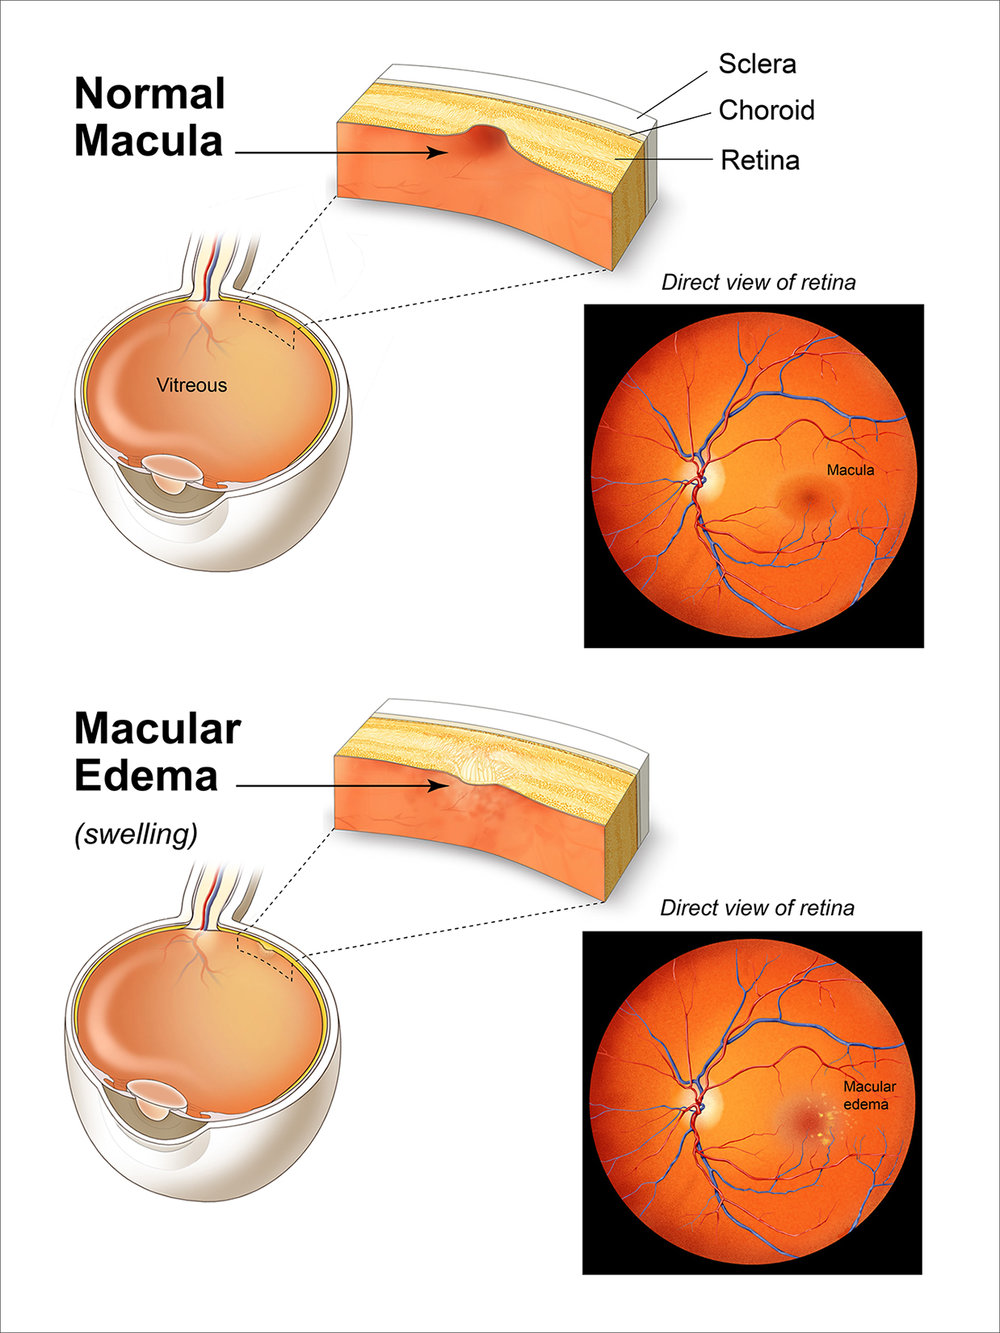 Normal vs Macular Edema.jpg